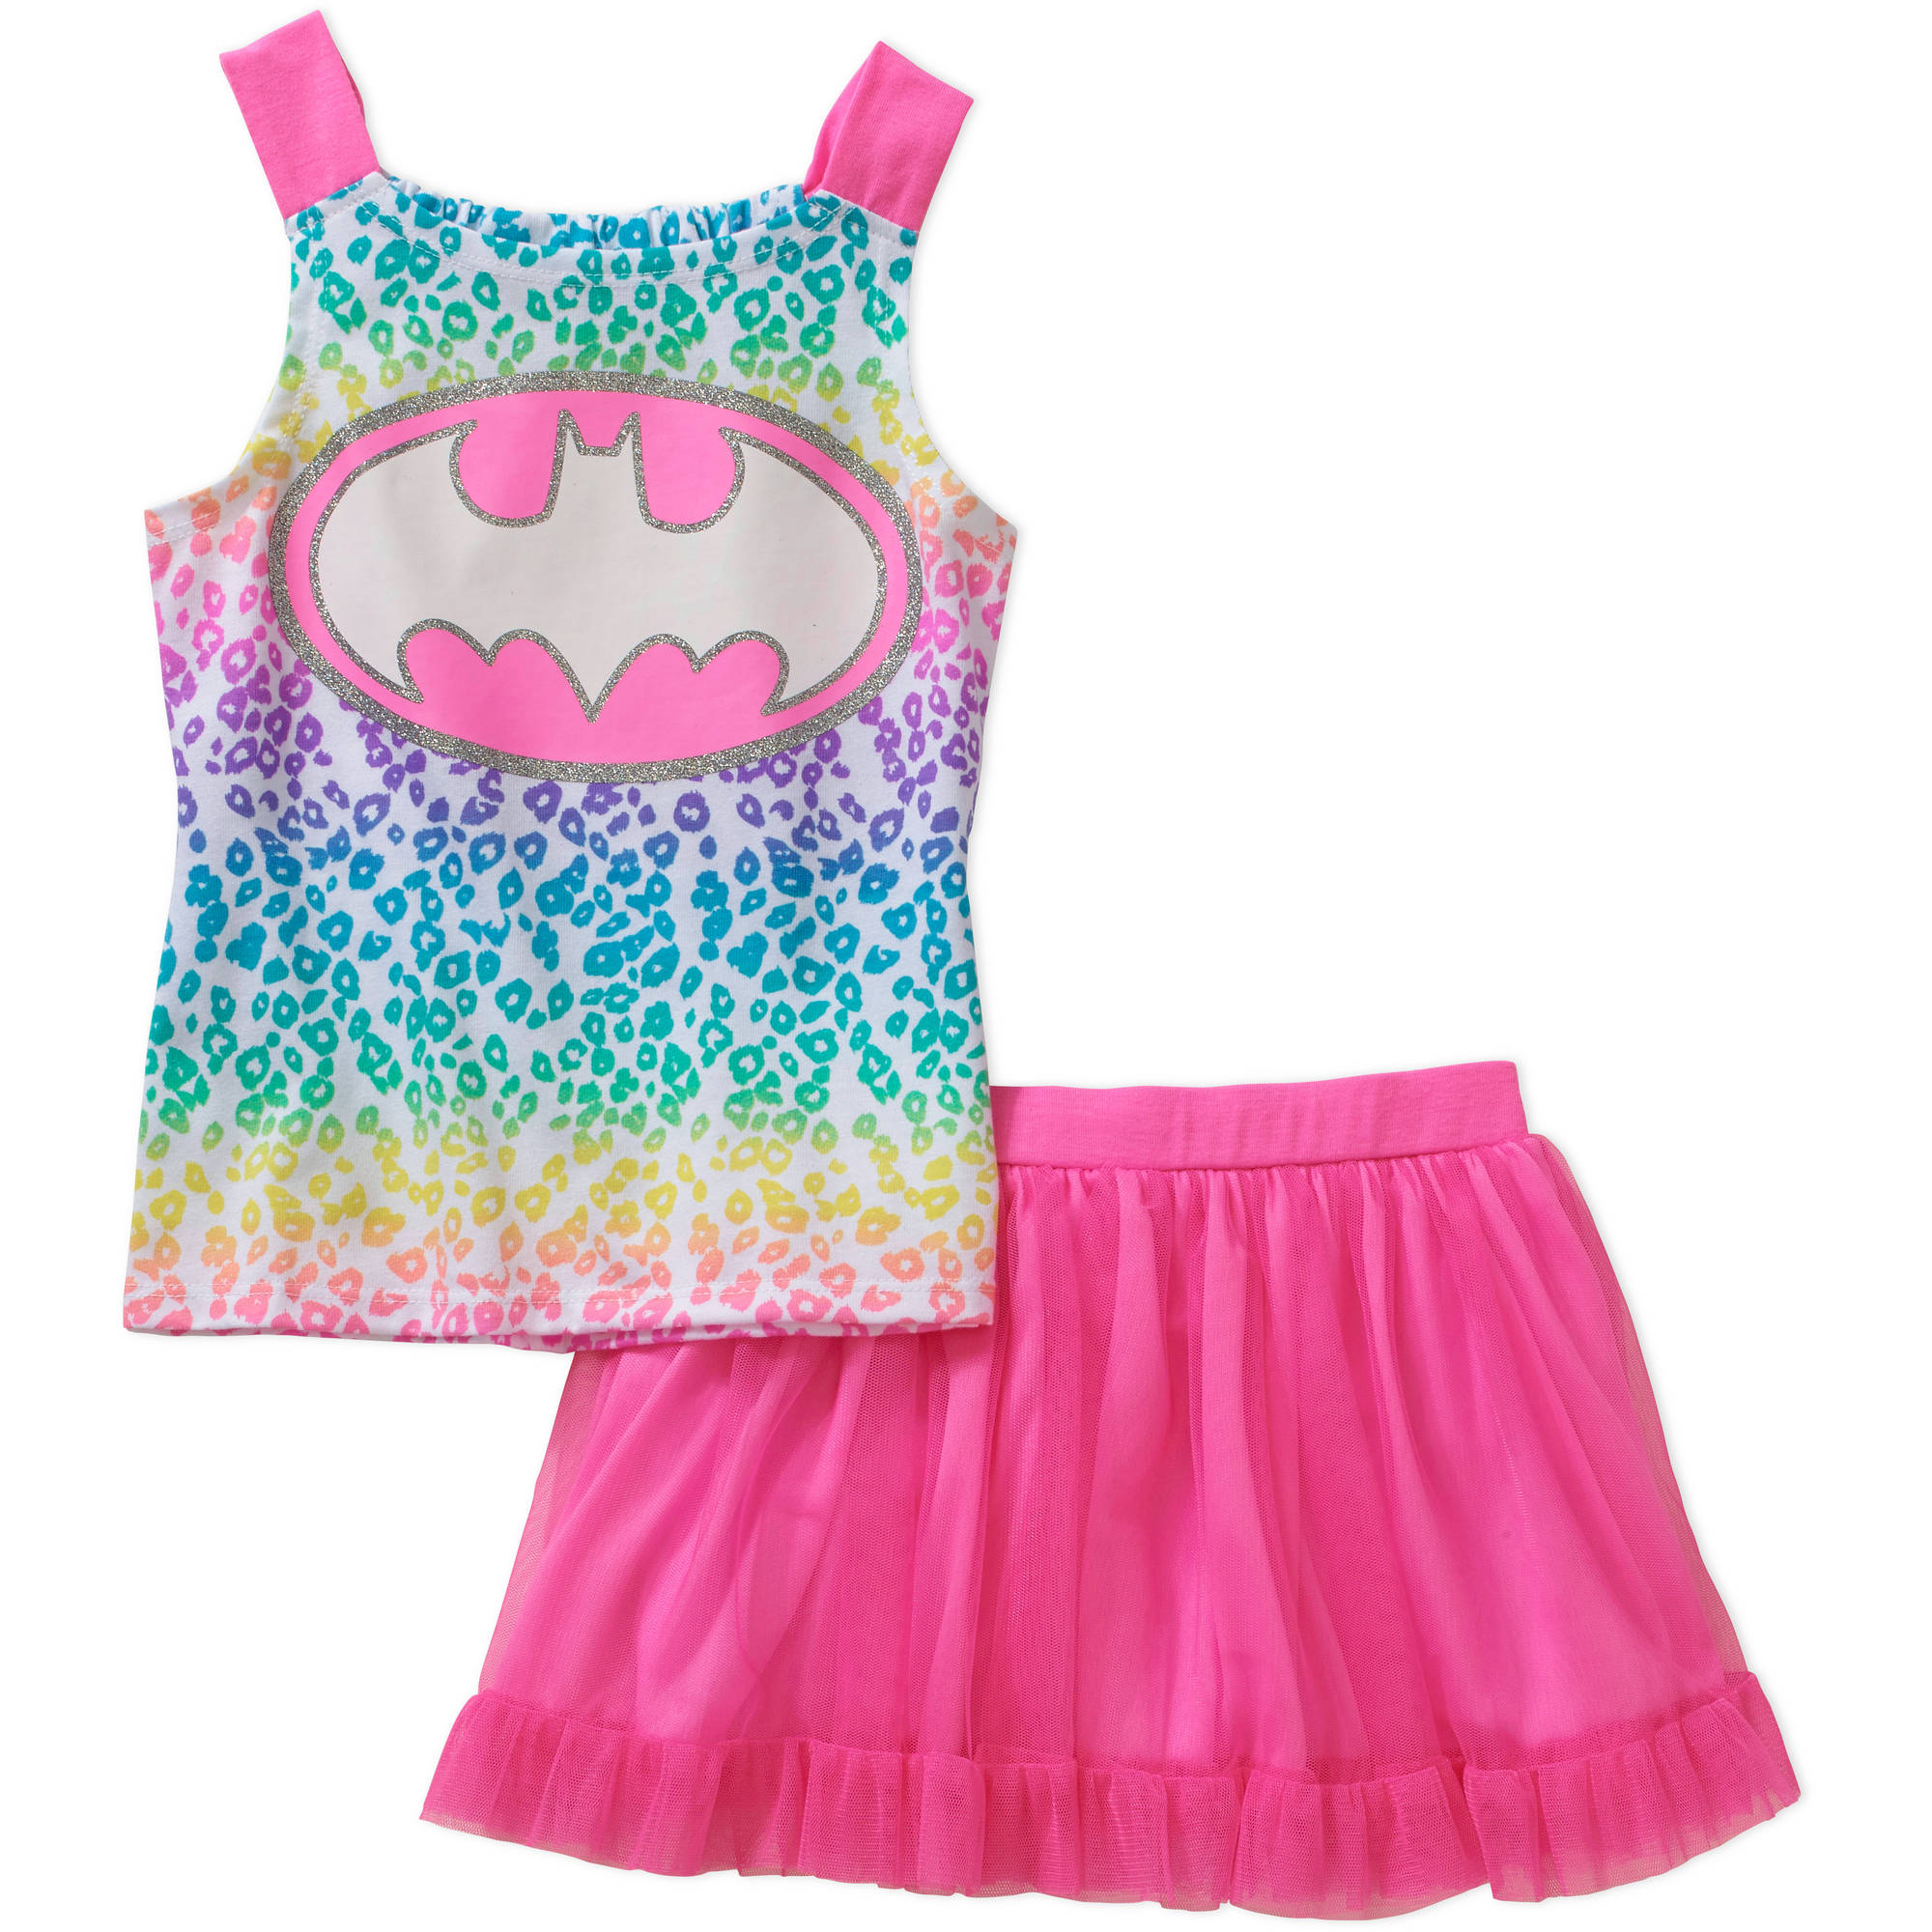 Batgirl Baby Toddler Girl Tank and Skirt Outfit Set